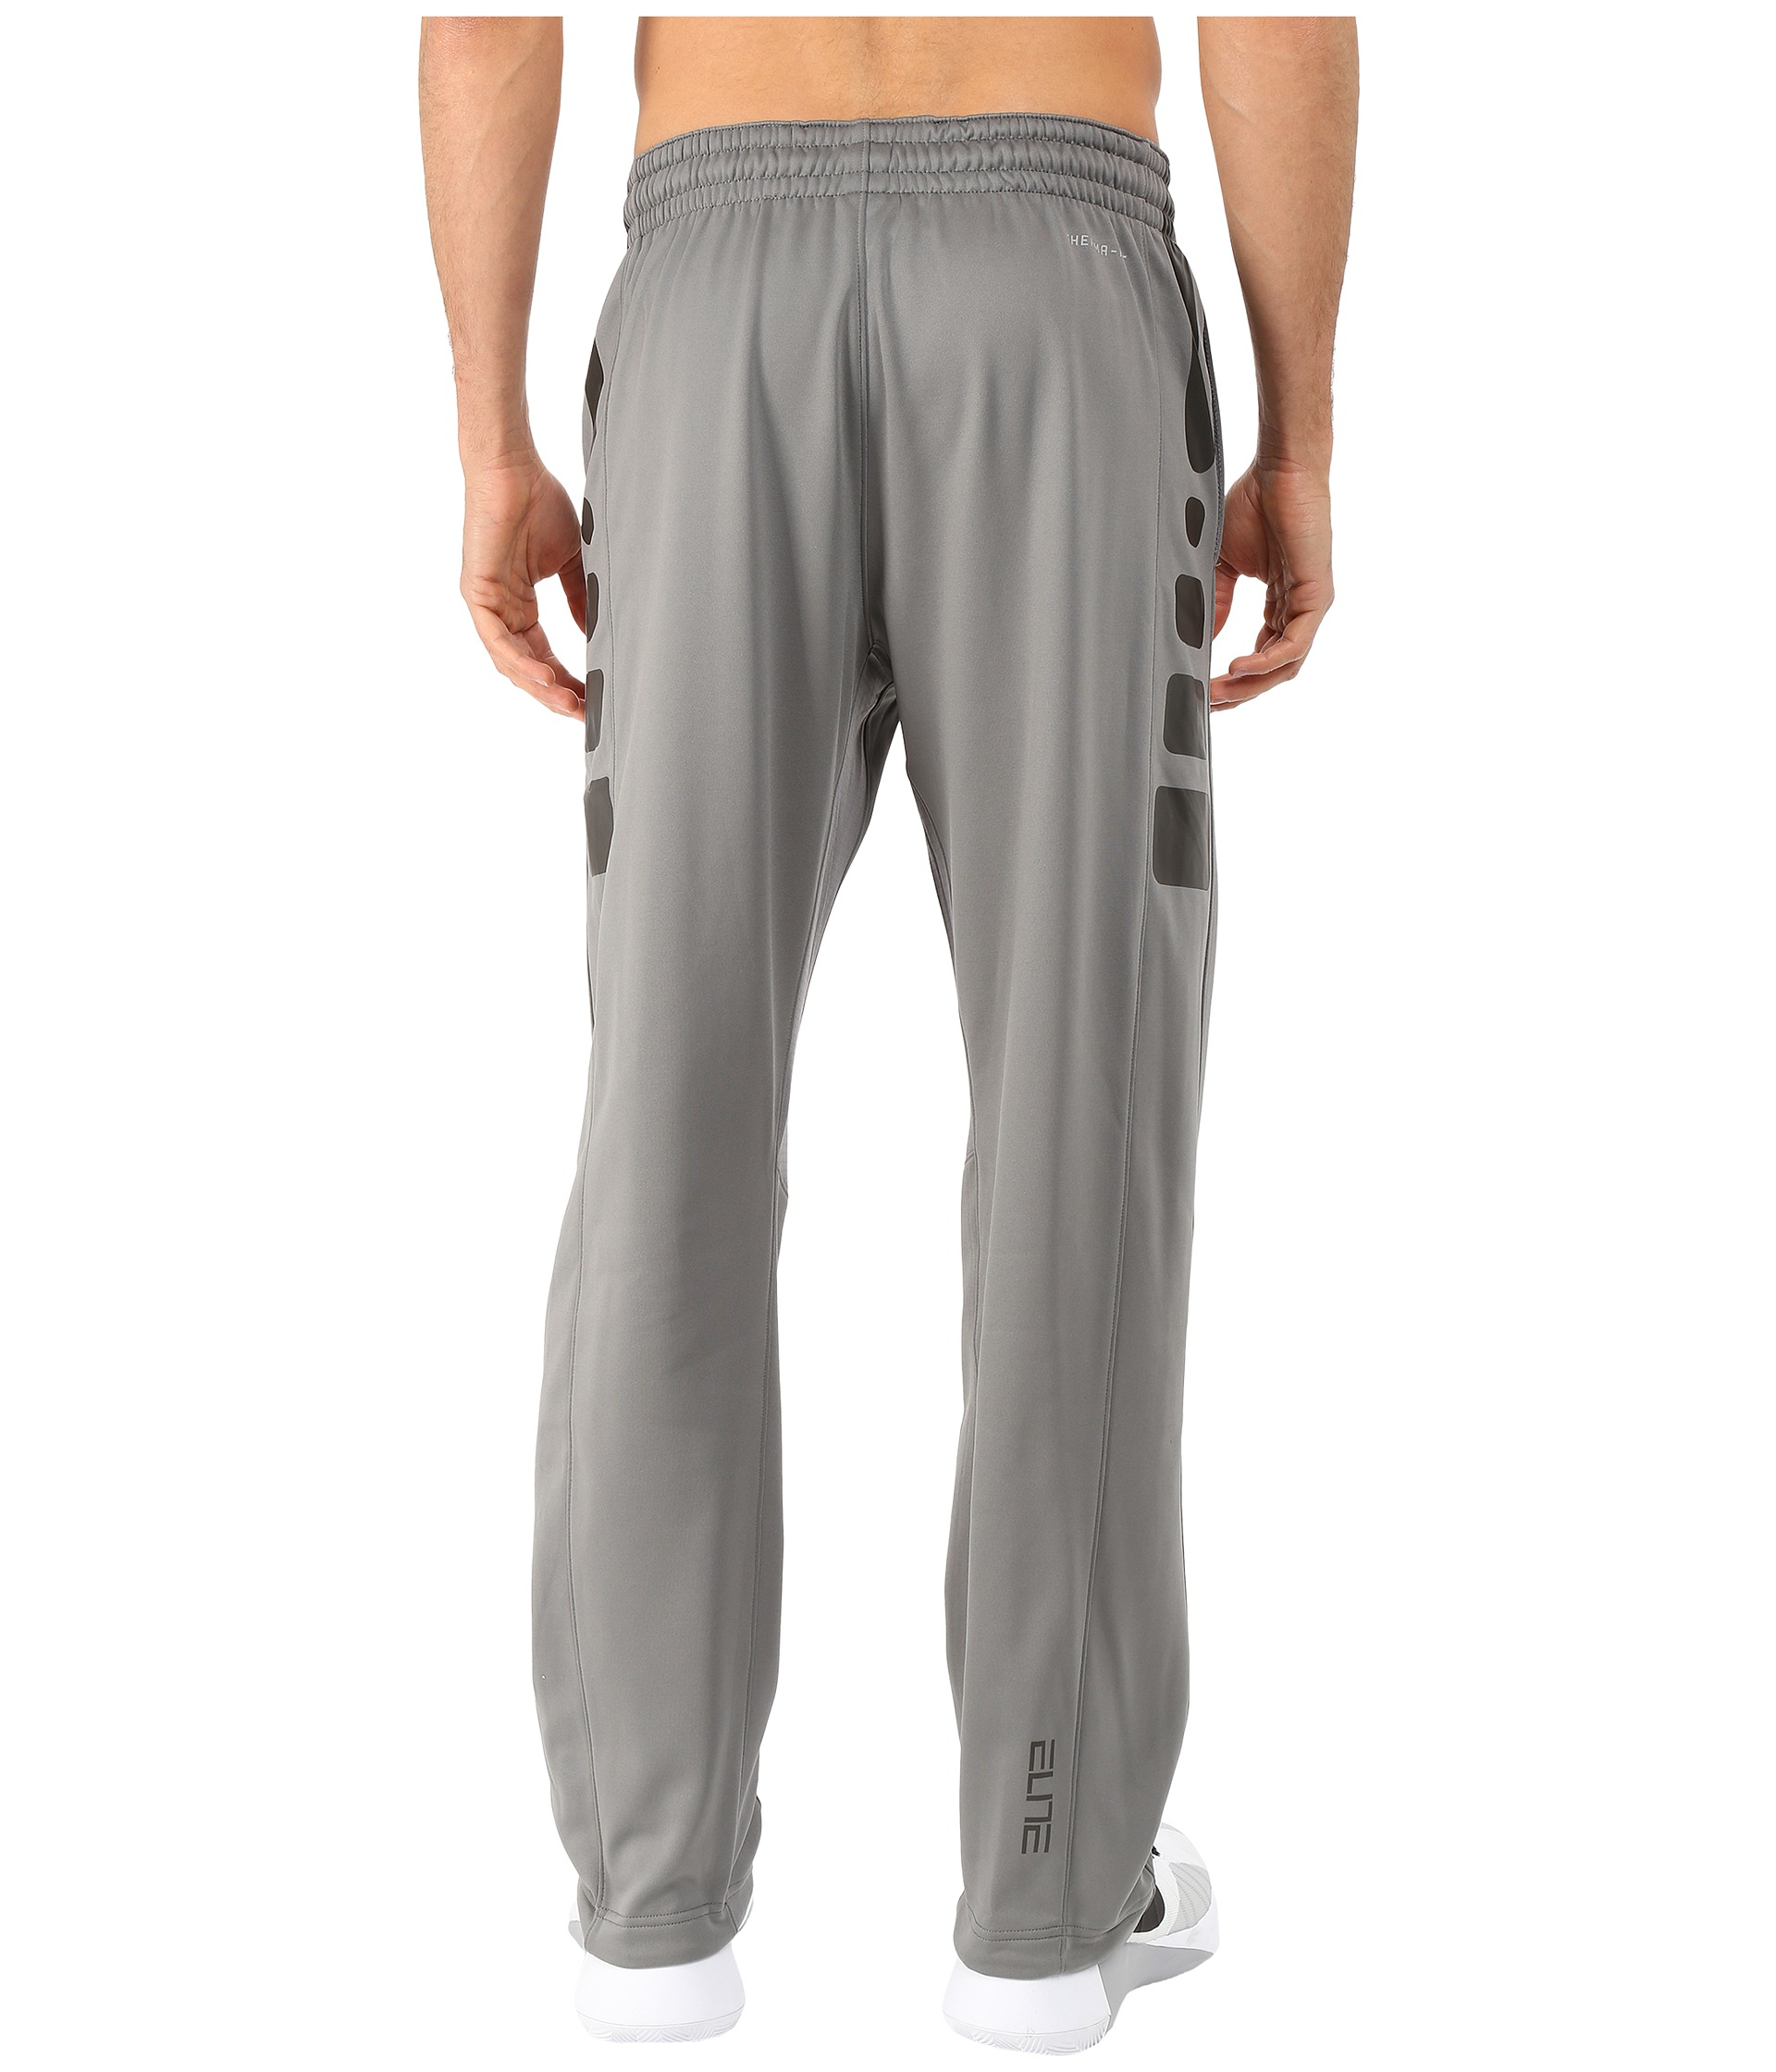 dbde6b5efbfb Lyst - Nike Elite Stripe Pants in Gray for Men